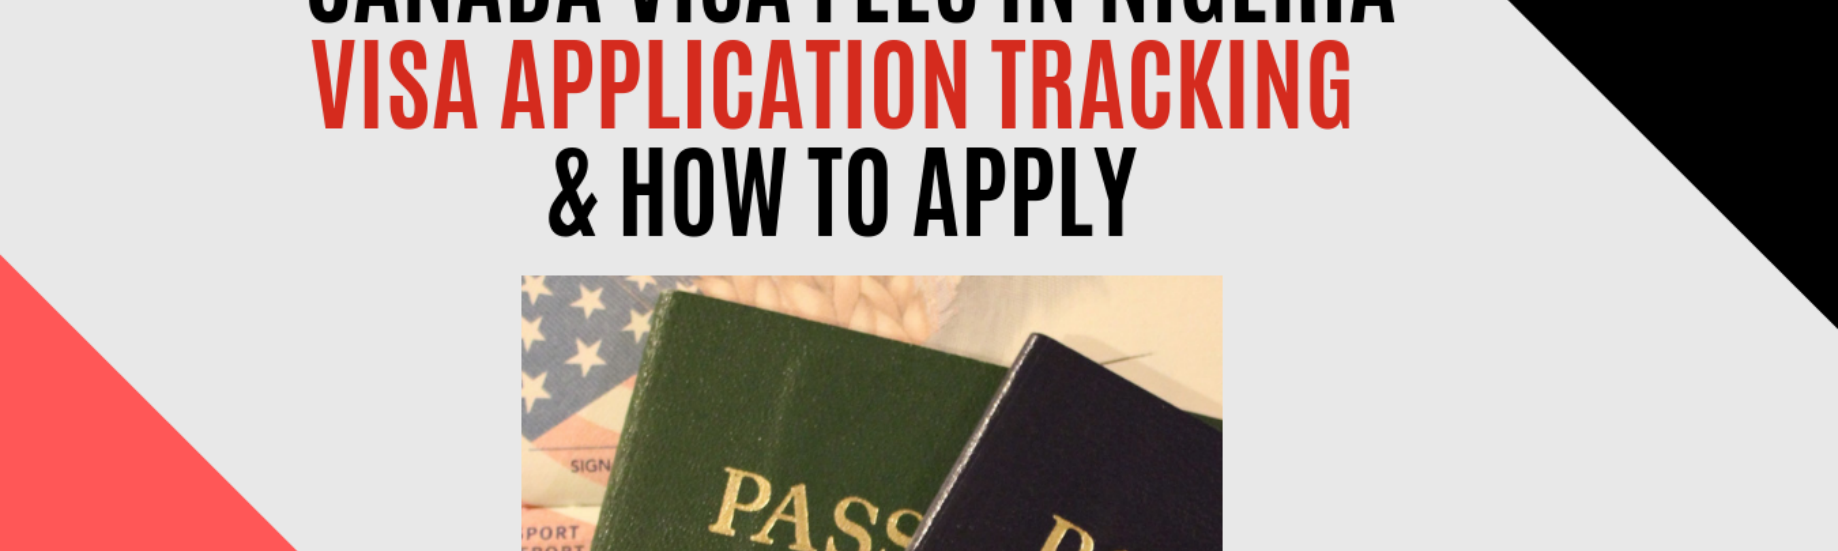 2020 Ultimate Guide To Canada Visa Fees In Nigeria Visa Application Tracking How To Apply For Canada Visa From Home Faqs By Permanent Residence Medium